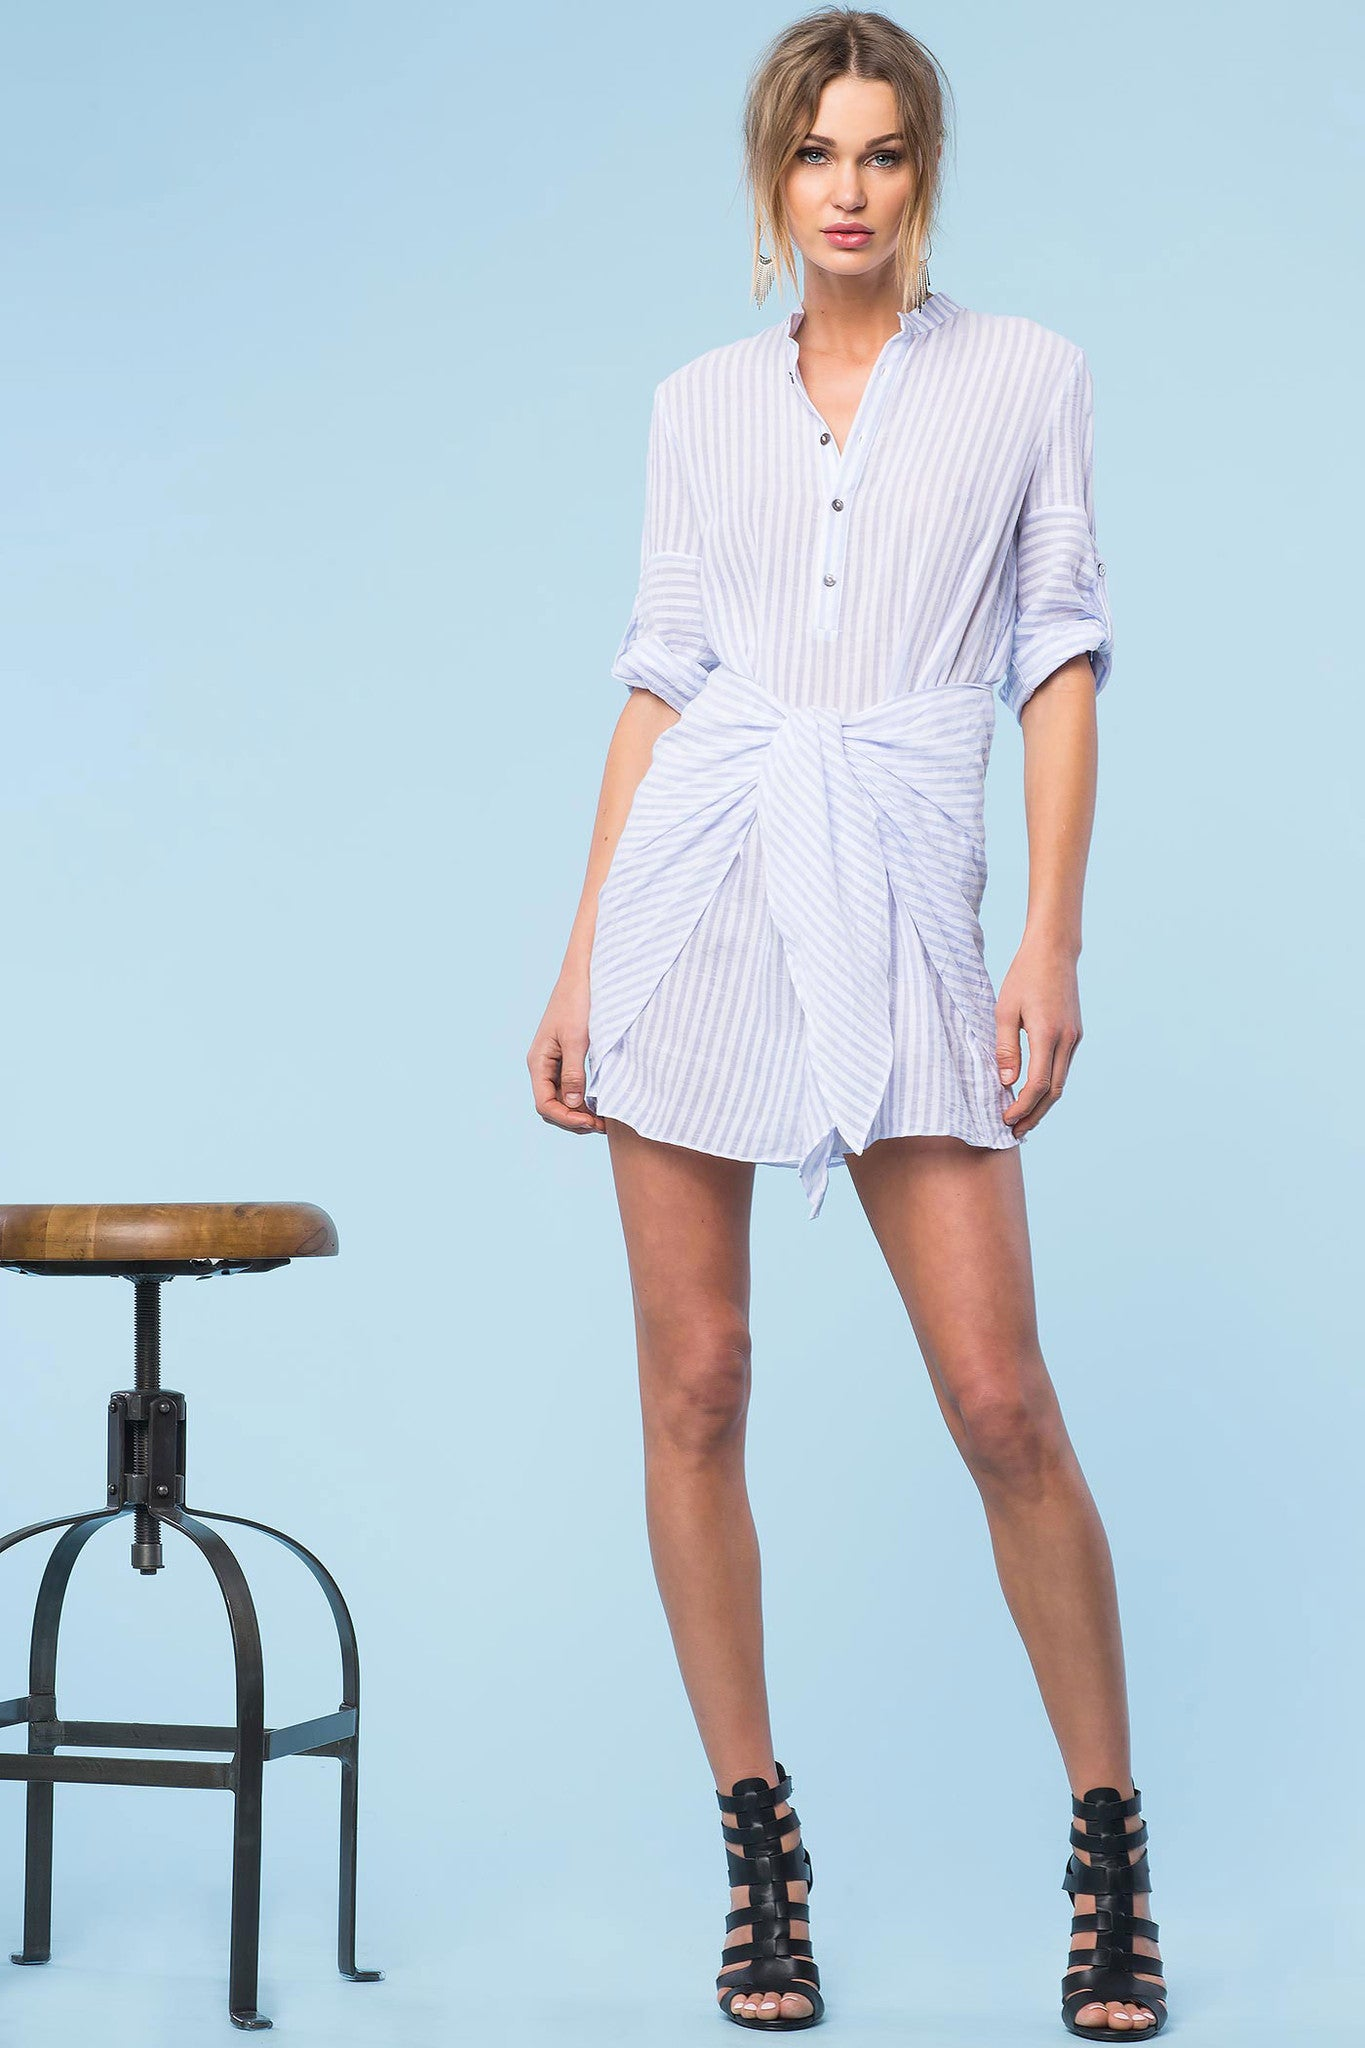 Womens Casual street style oufit ideas: City pinstripe mini shirt dress with blue and white stripes. Front view